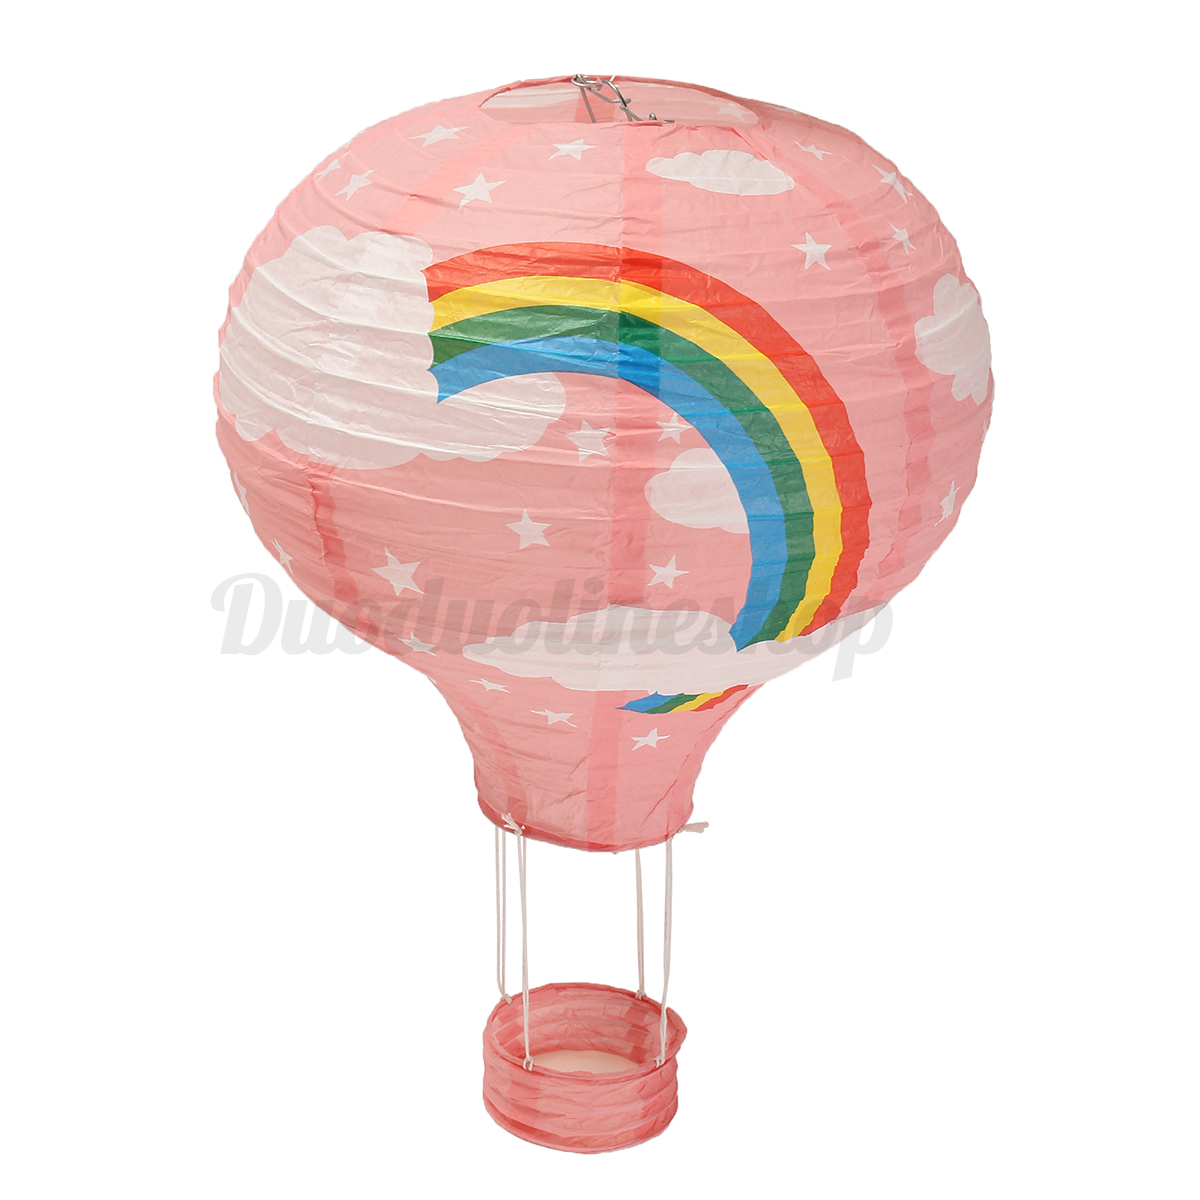 12 39 39 hot air balloon paper lantern lampshade ceiling light home room party decor ebay. Black Bedroom Furniture Sets. Home Design Ideas